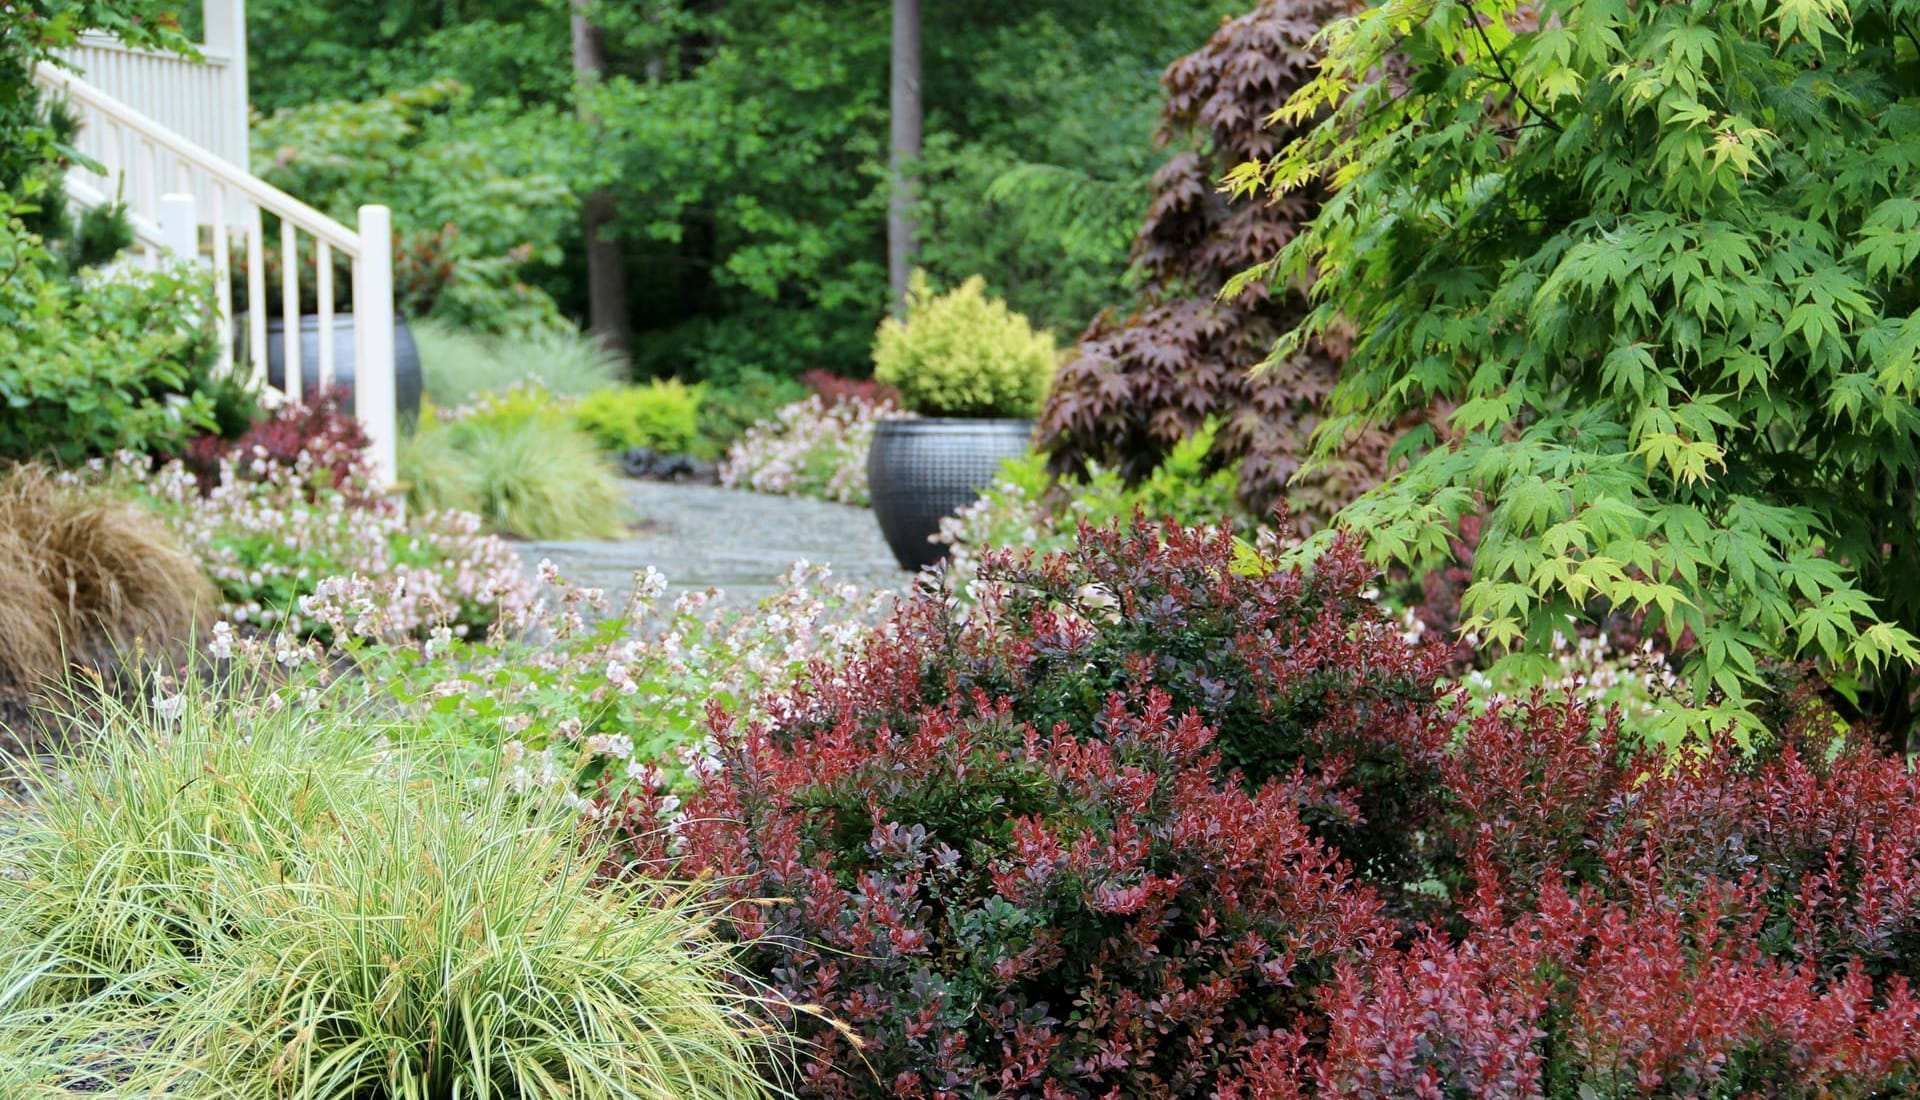 Best backyard landscaping ideas #5